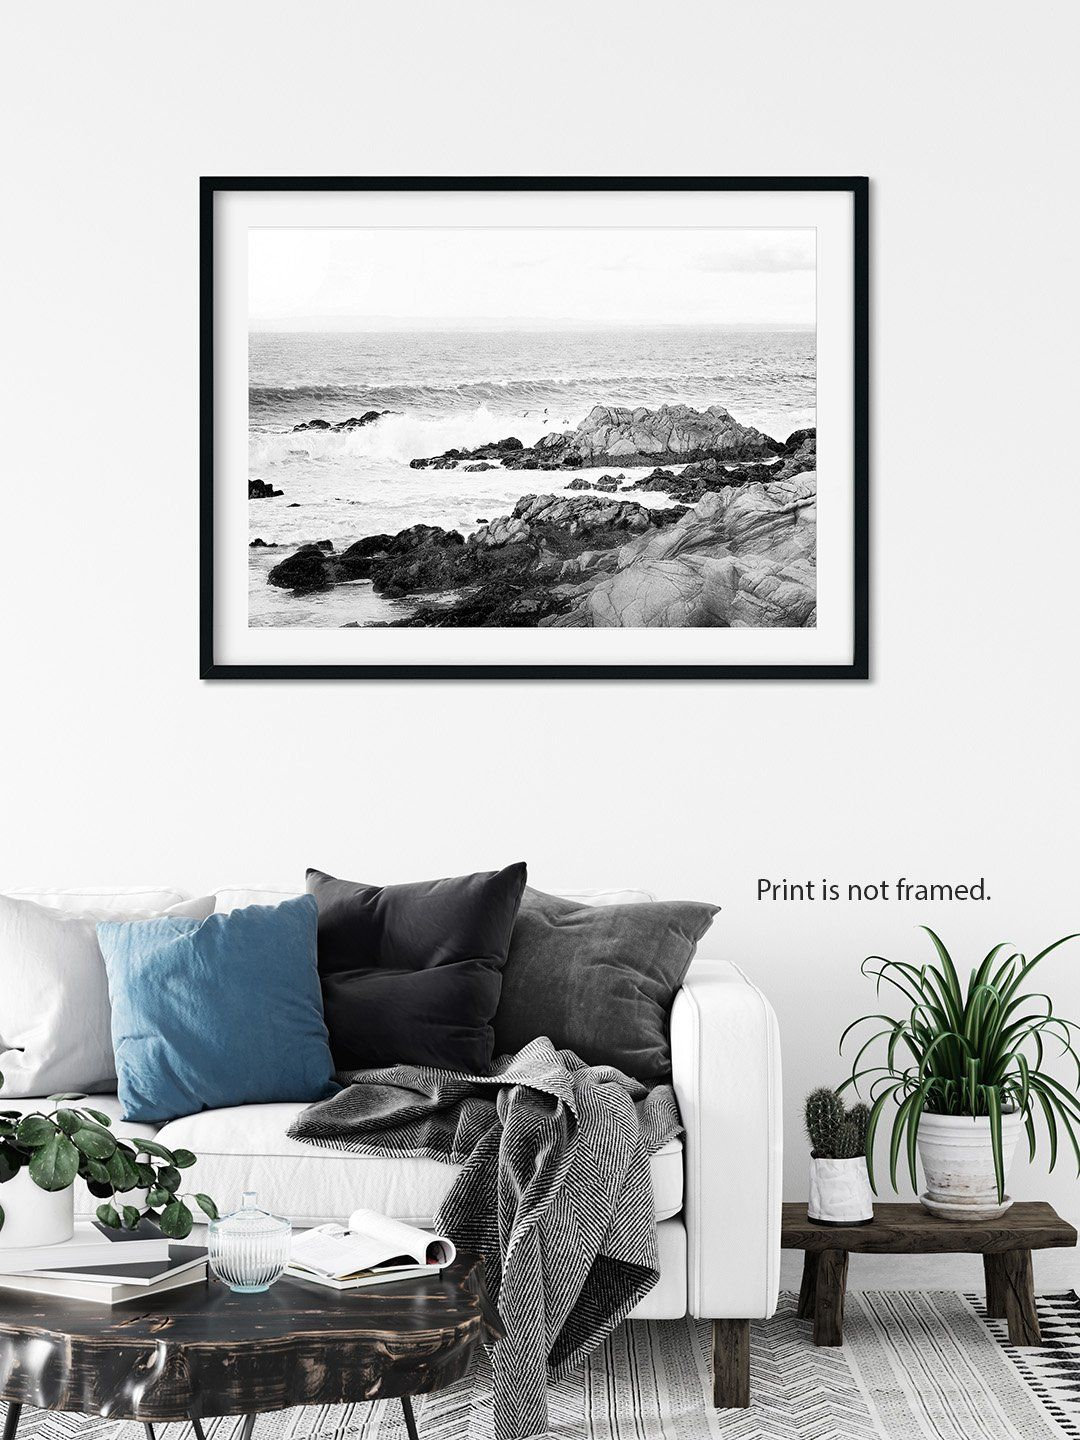 Rocky Shores Black And White Coastal Wall Art For Your Beach Decorart Print 20x30 In 2021 Coastal Wall Art Coastal Farmhouse Decor Black And White Beach